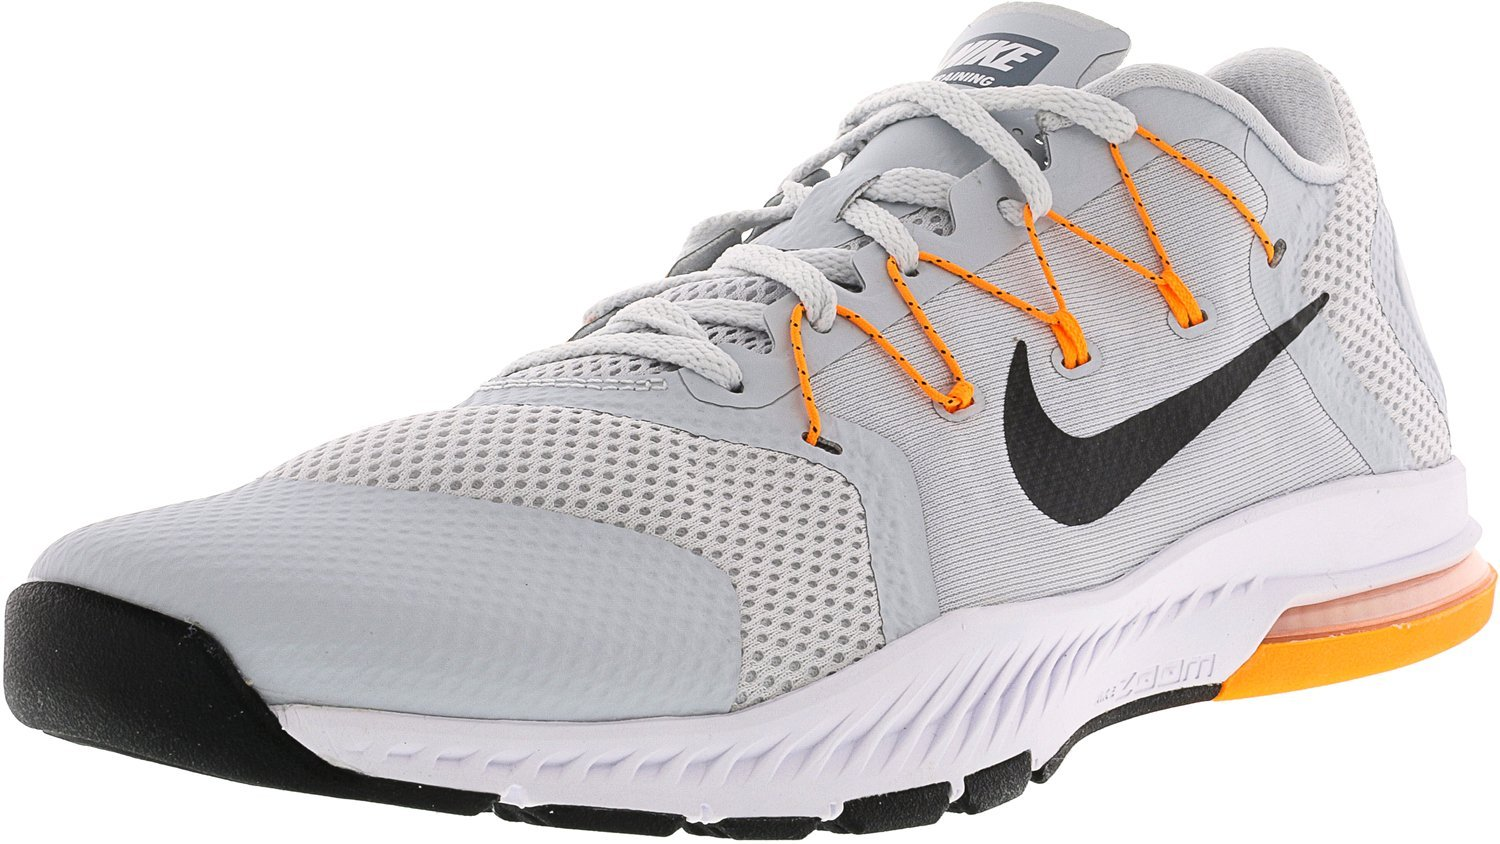 c4cde4f15e0933 NIKE Air Zoom Train Complete Mens Mens Mens Running Trainers 882119  Sneakers Shoes B01DLD4VP2 12 D